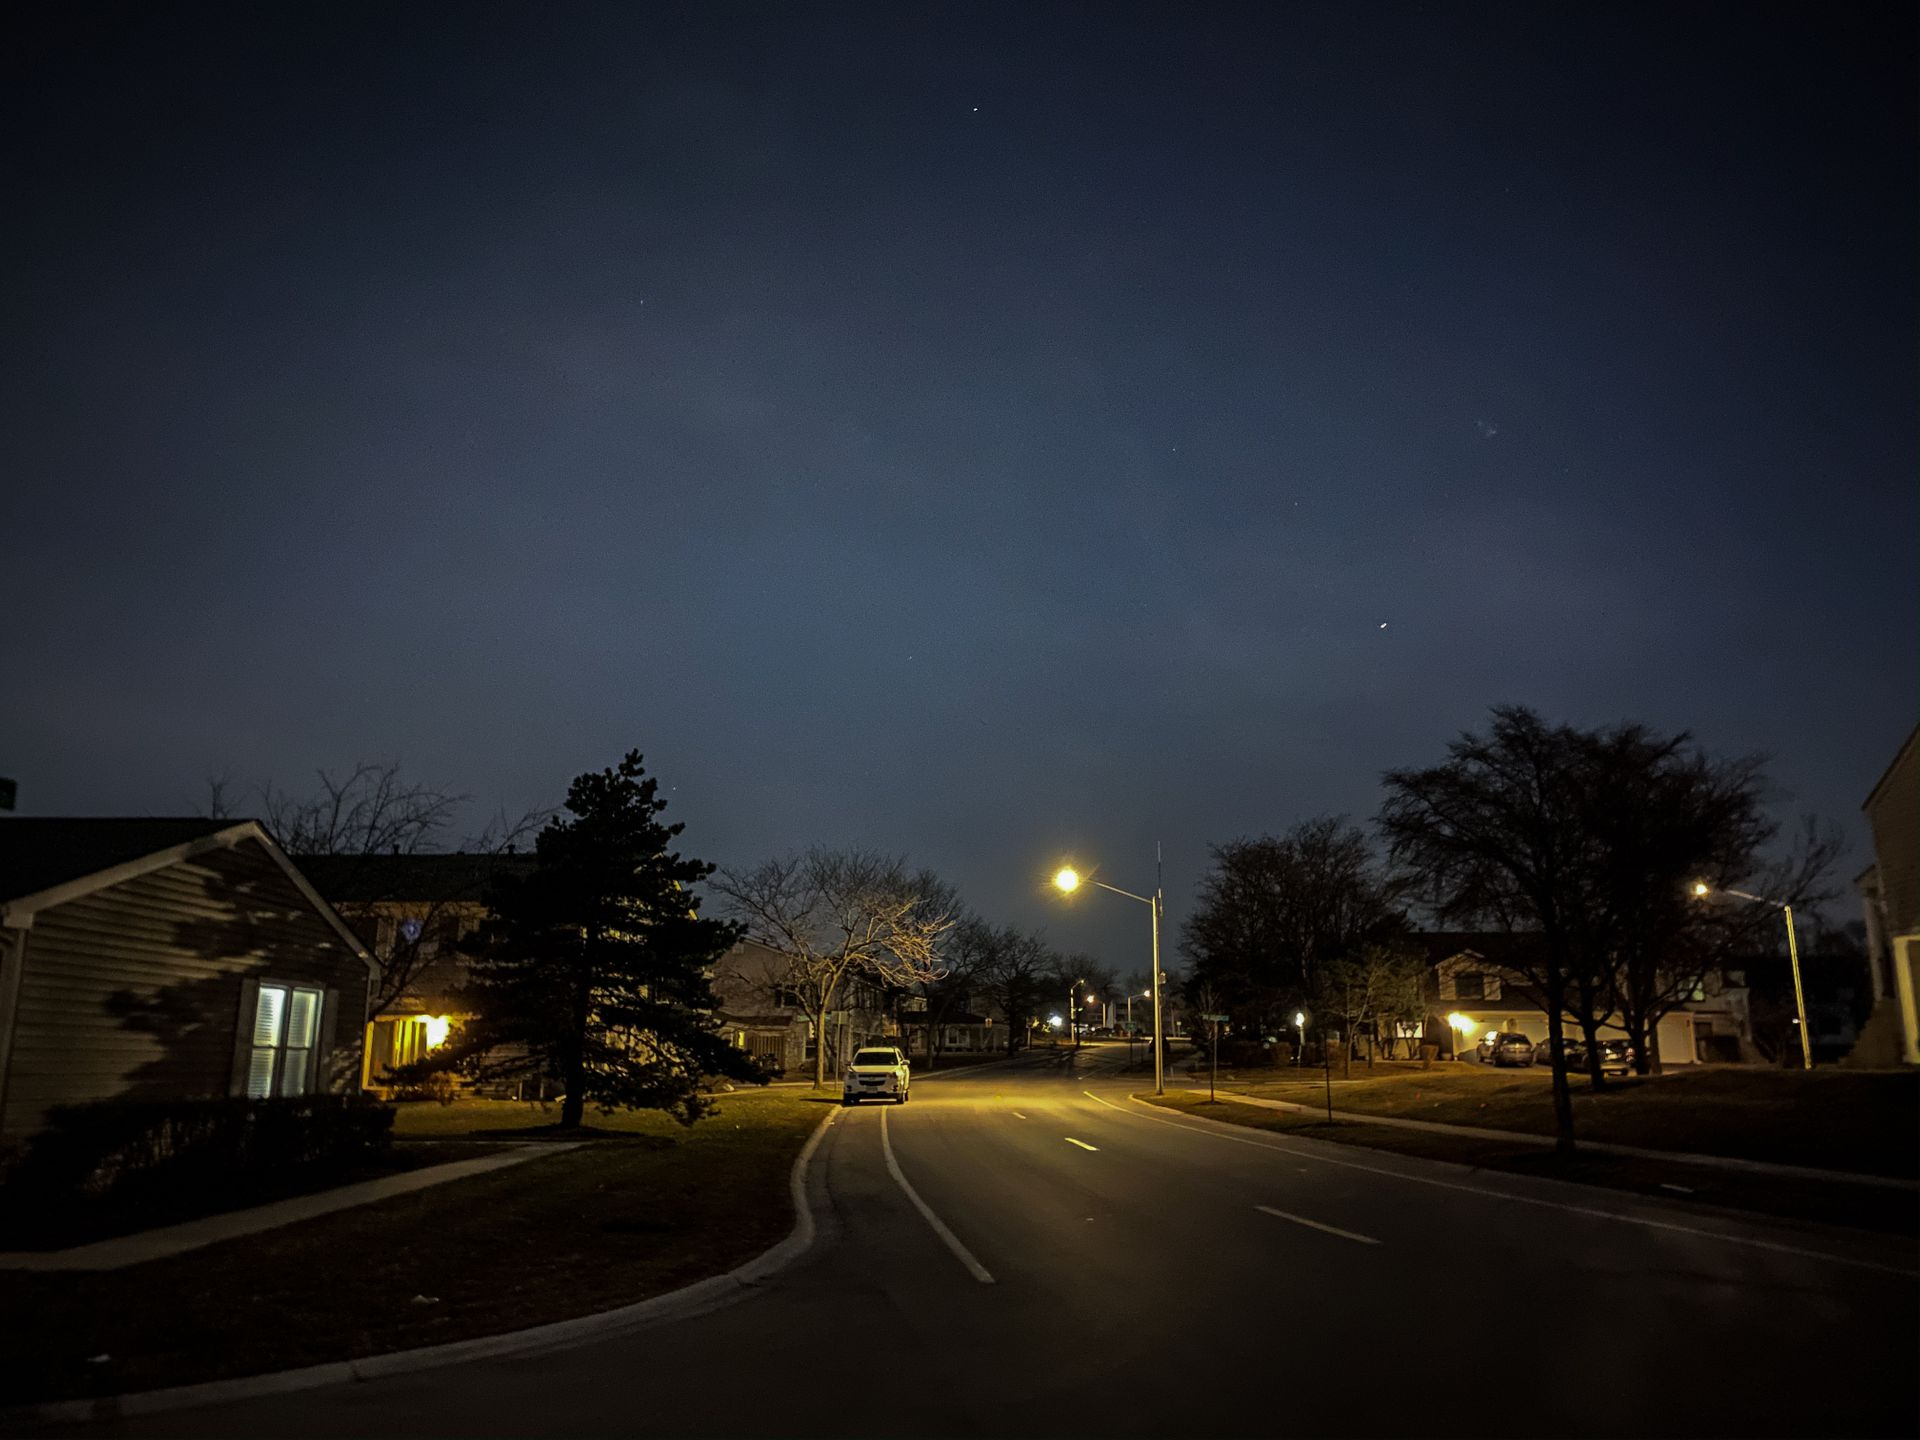 Night Modes Are Great, but Have a Long Way to Go